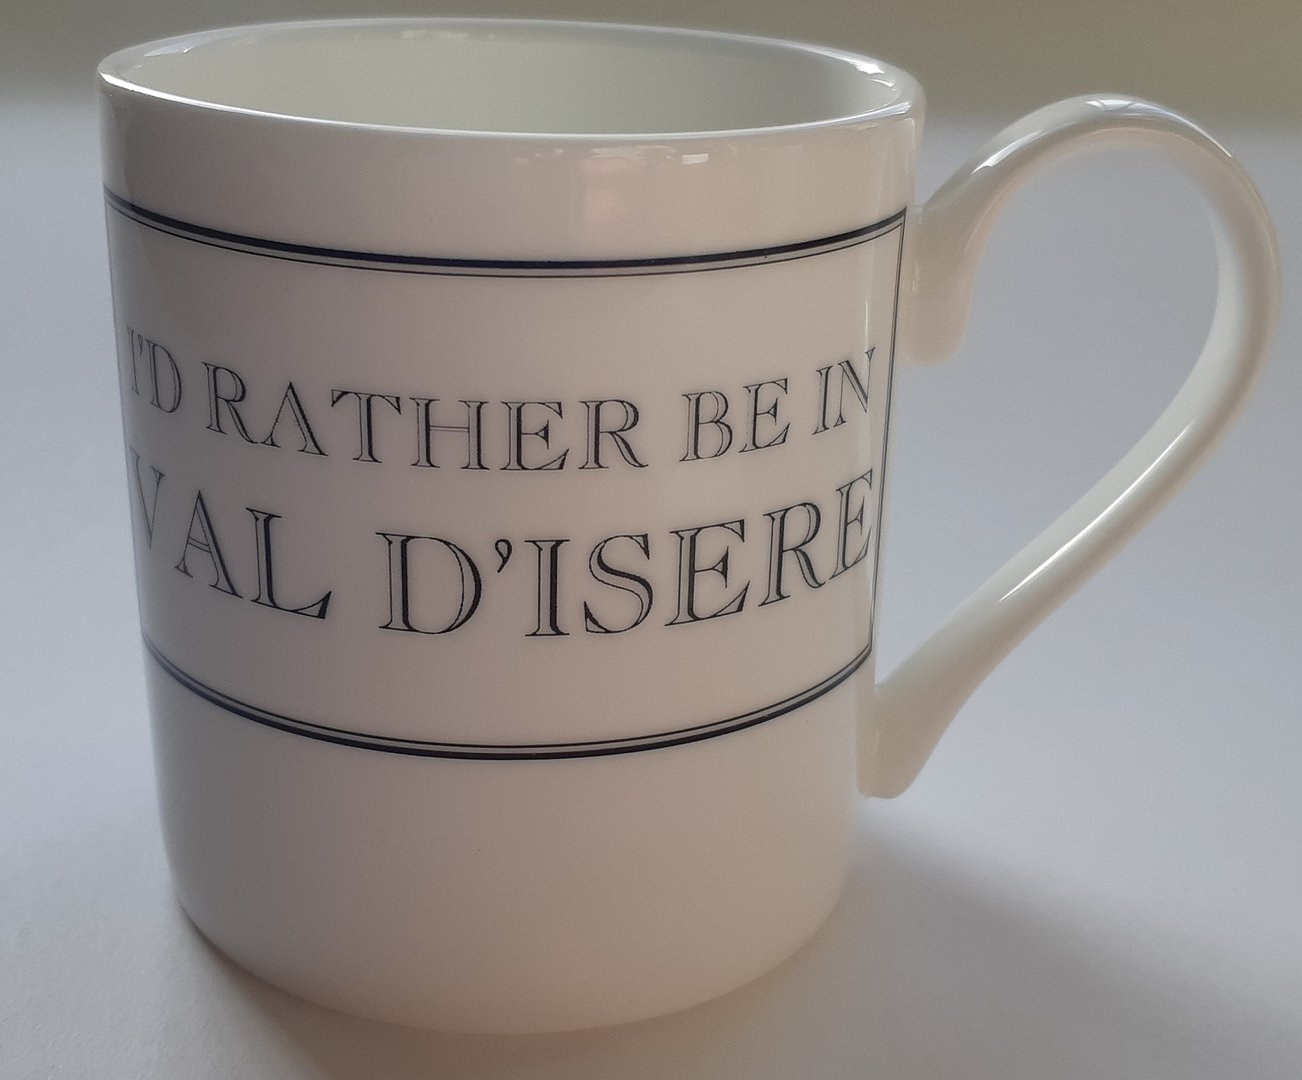 I'd Rather Be in VAL D'ISERE Mug